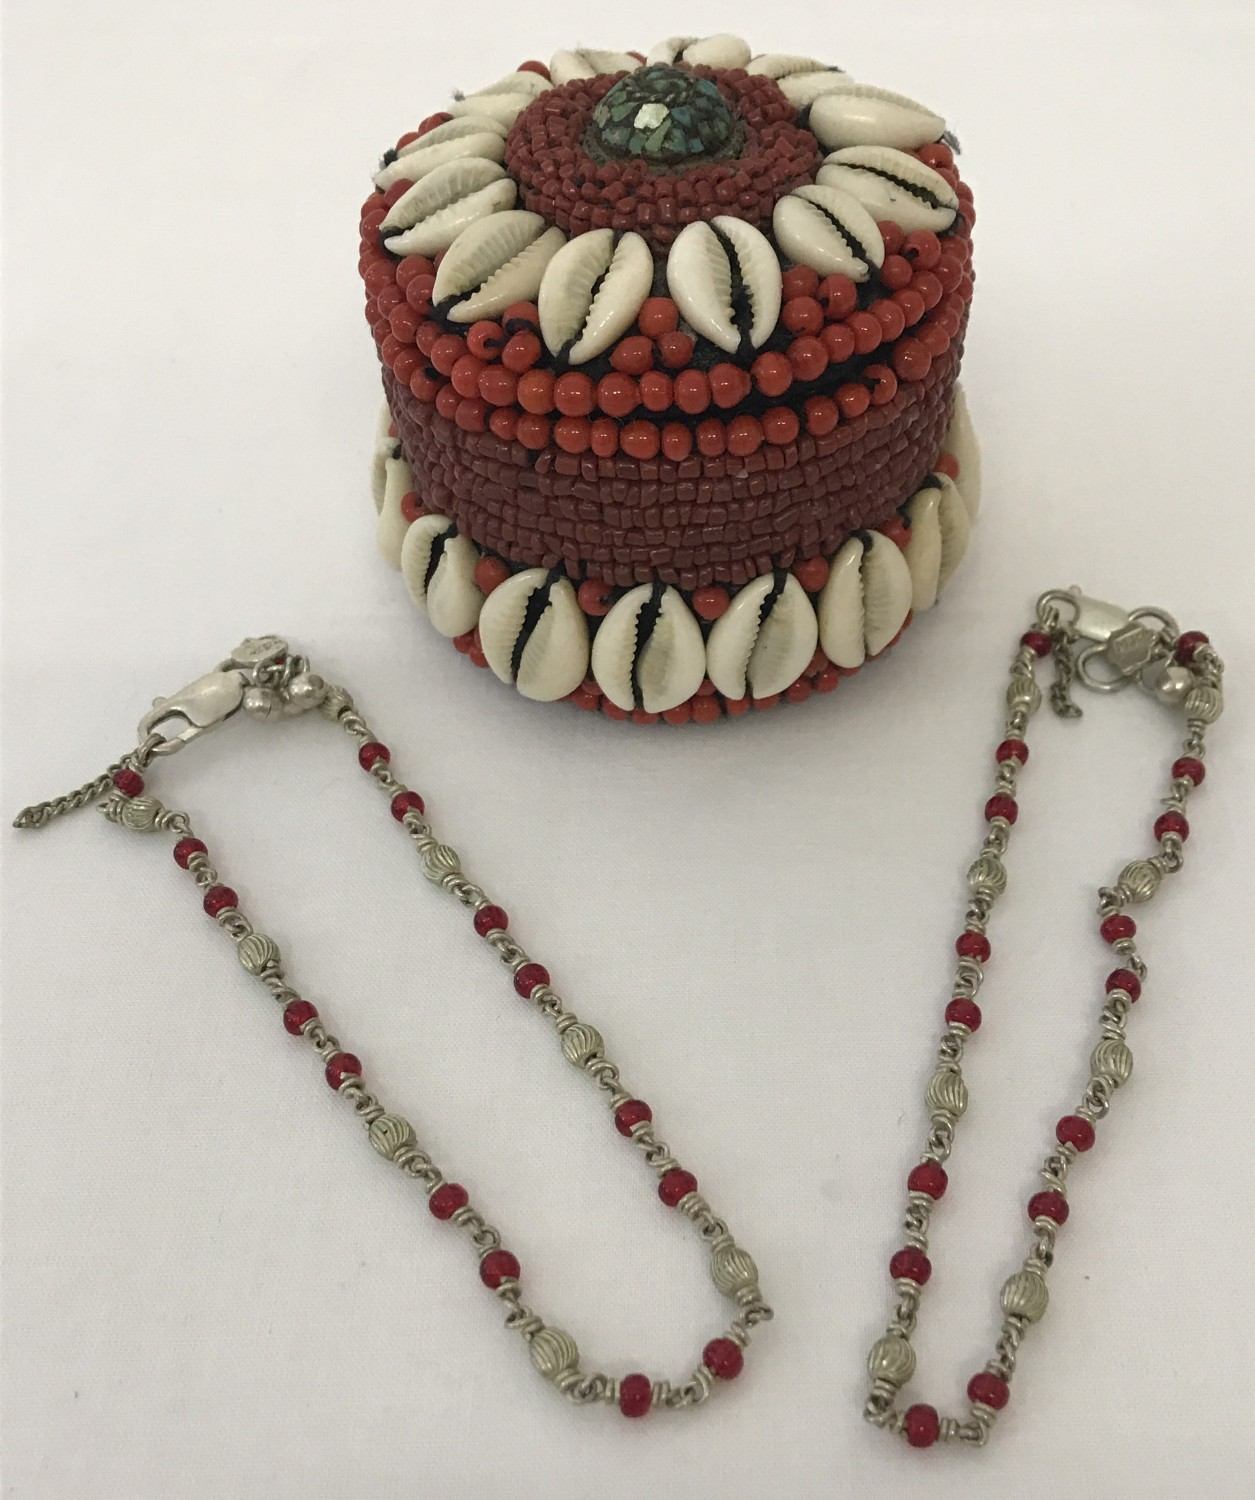 Lot 10 - 2 Indian white metal and red glass bead decorative ankle chains, both with makers marks.